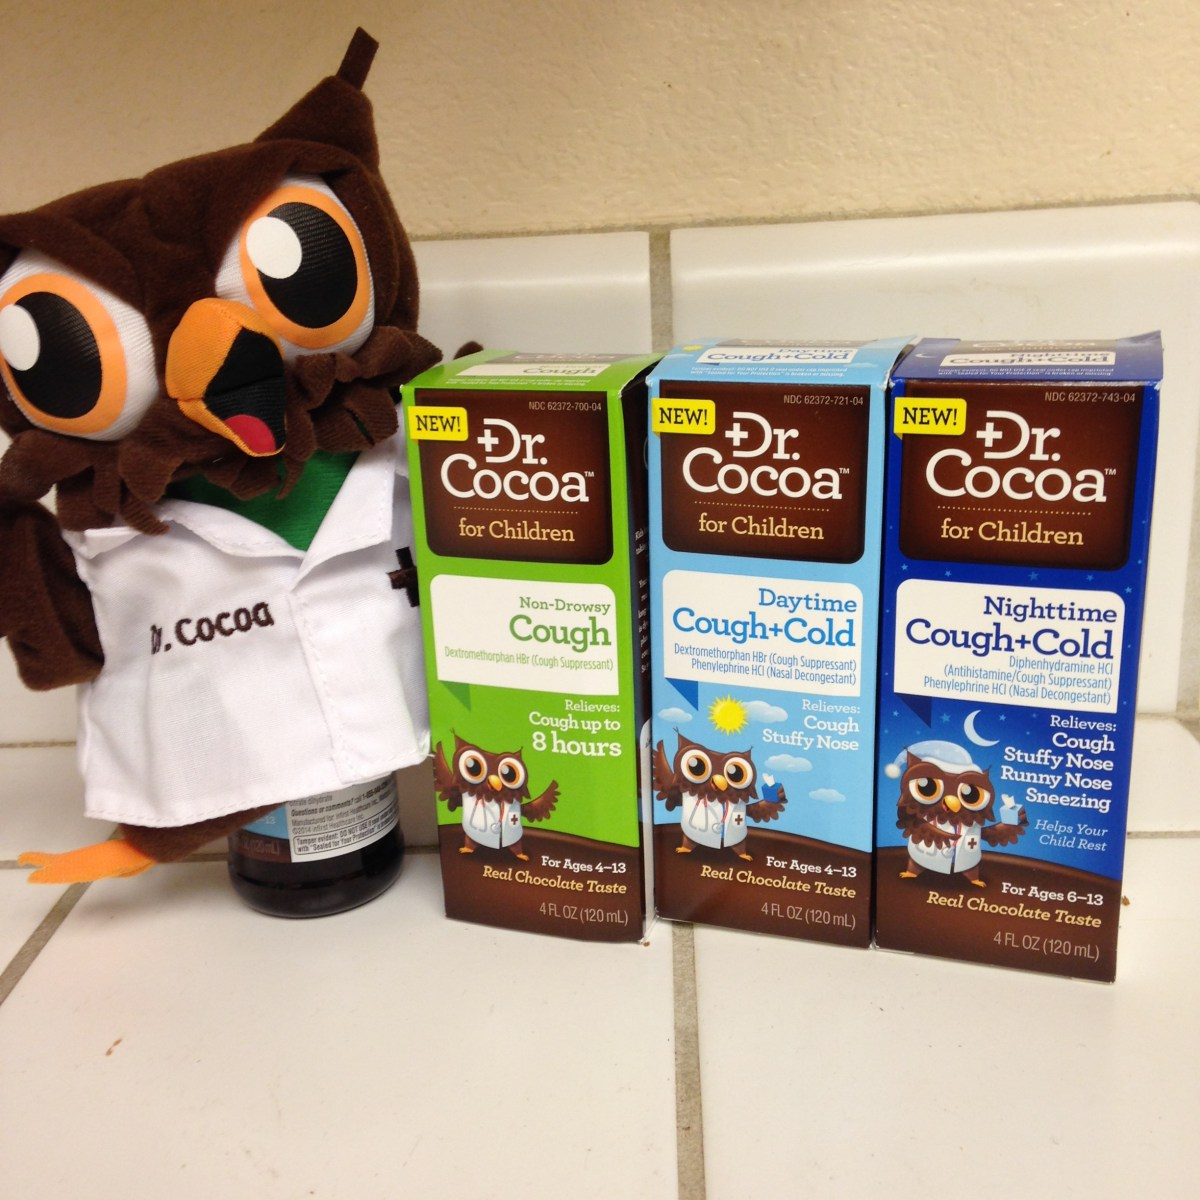 Children's Cough and Cold Relief with a Smile from Dr. Cocoa